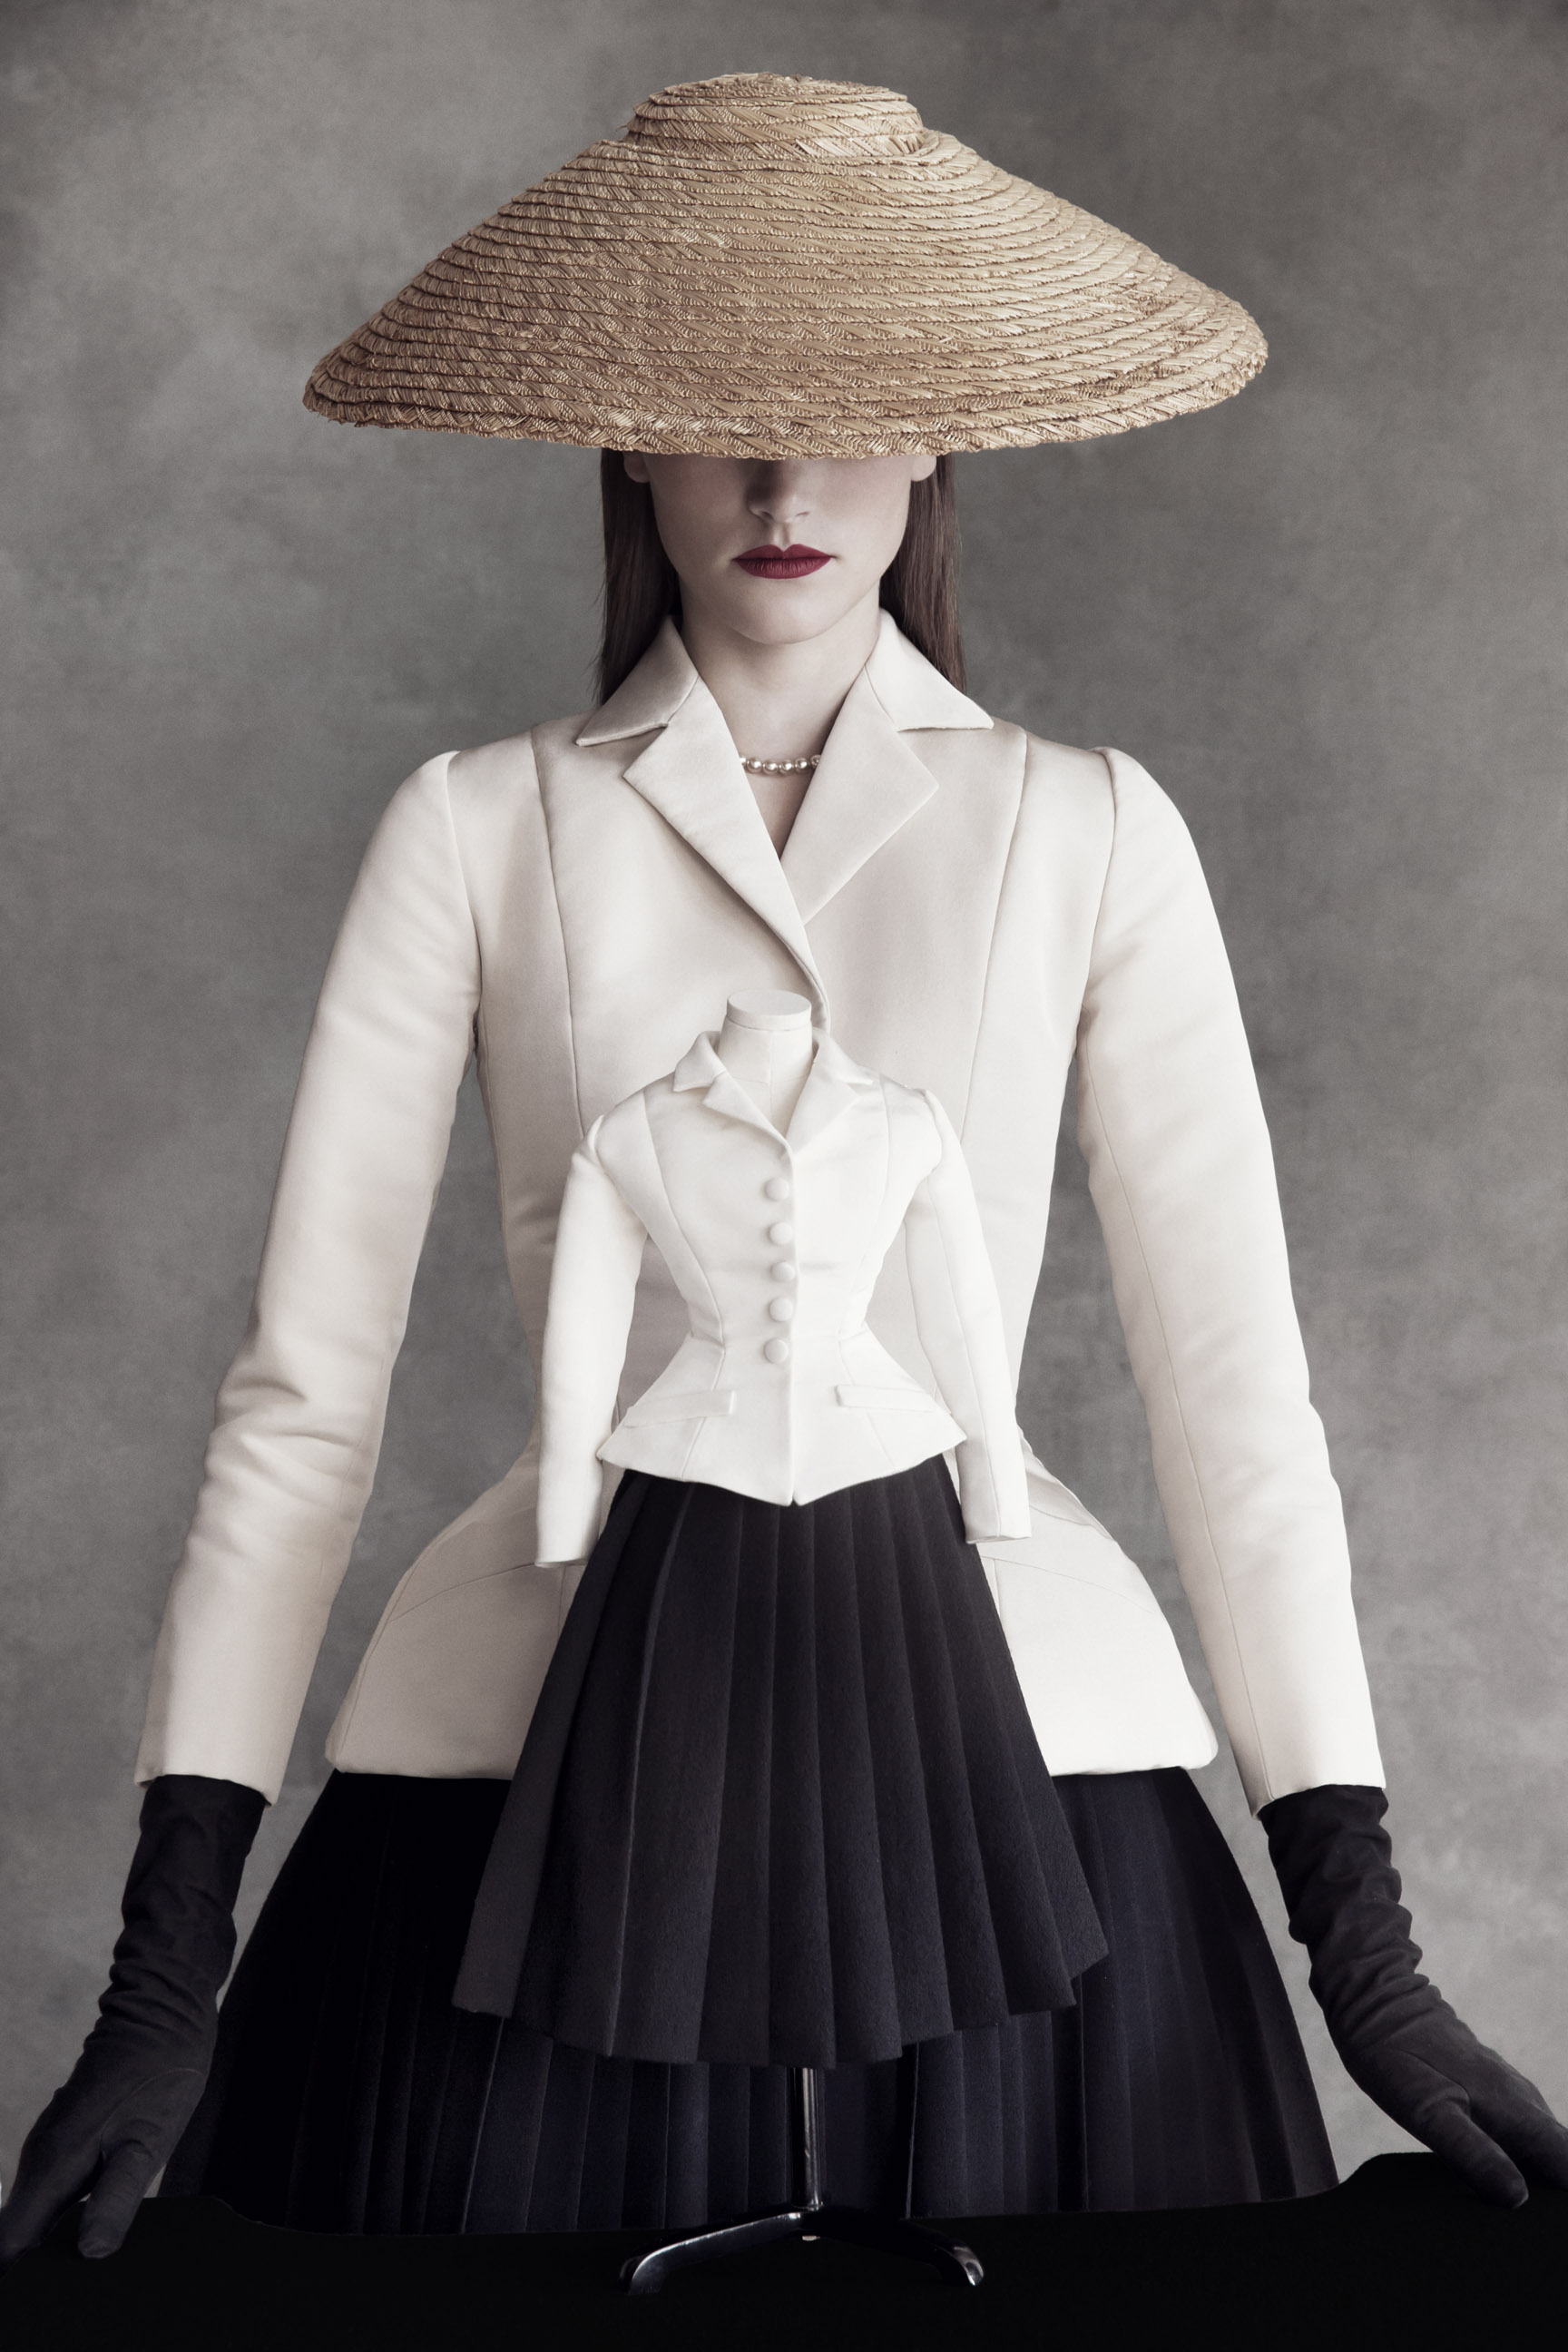 Theatre-Dior-by-Patrick-Demarchelier-01